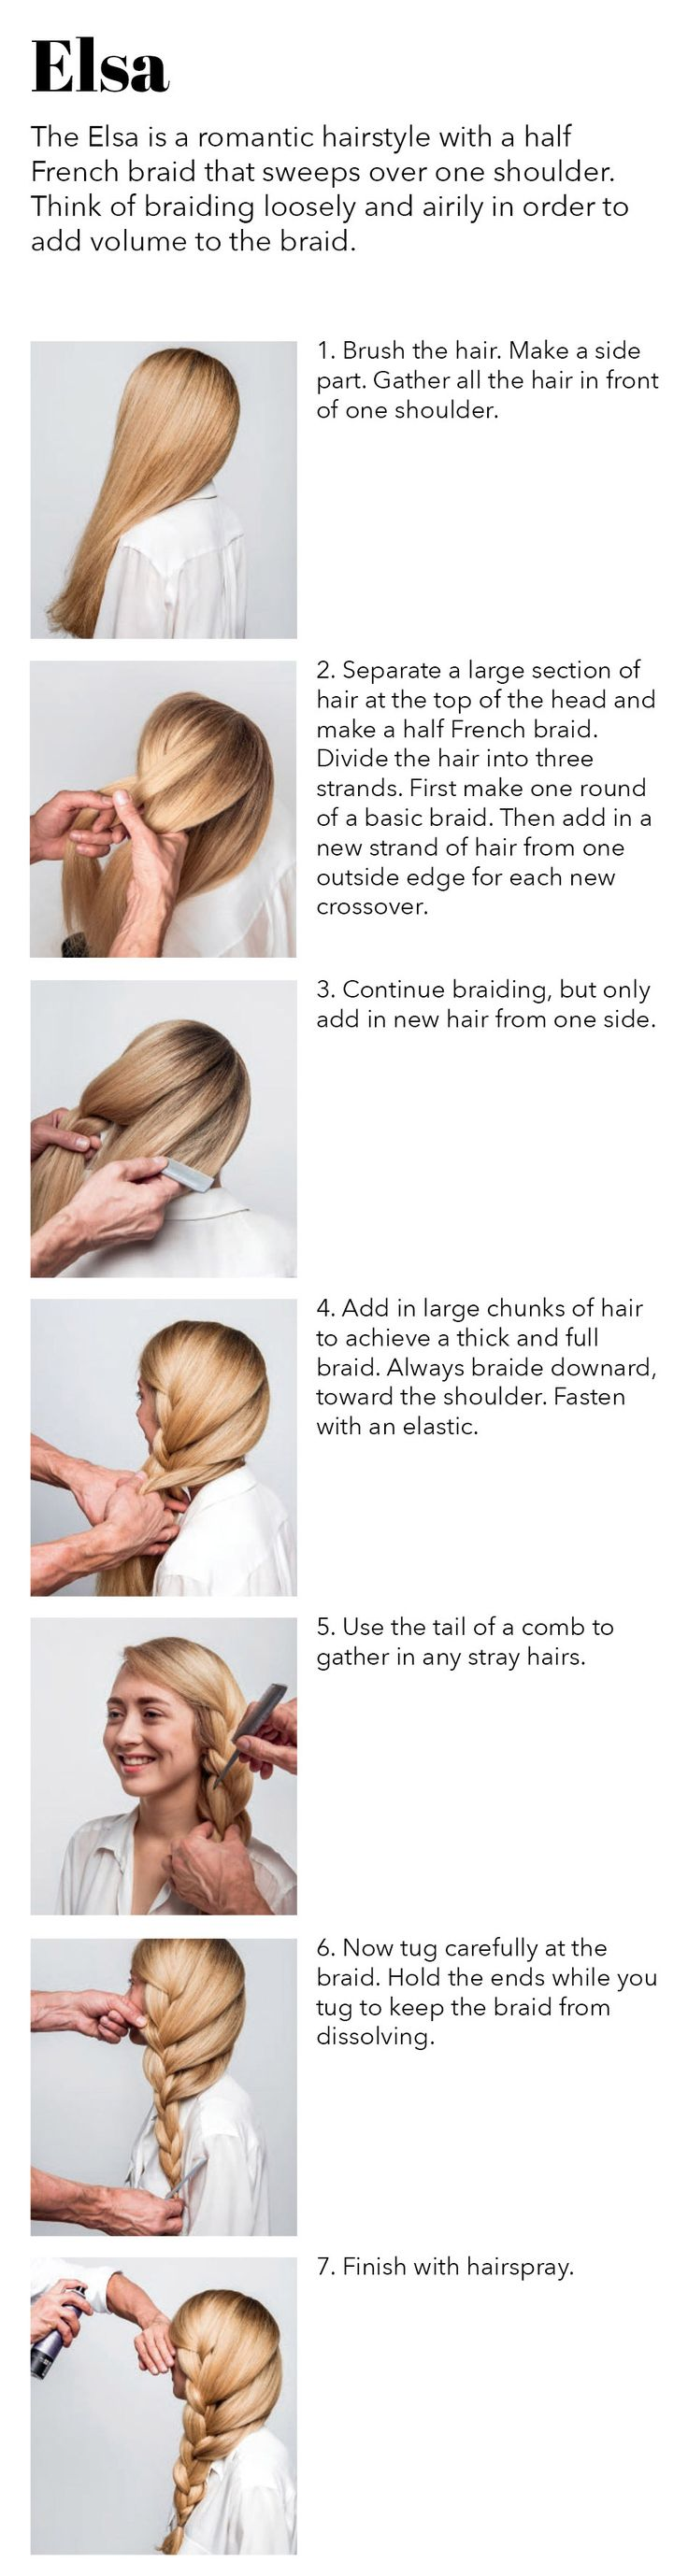 Elsa Braid || A romantic hairstyle and easy braid with a half French braid that sweeps over one shoulder.